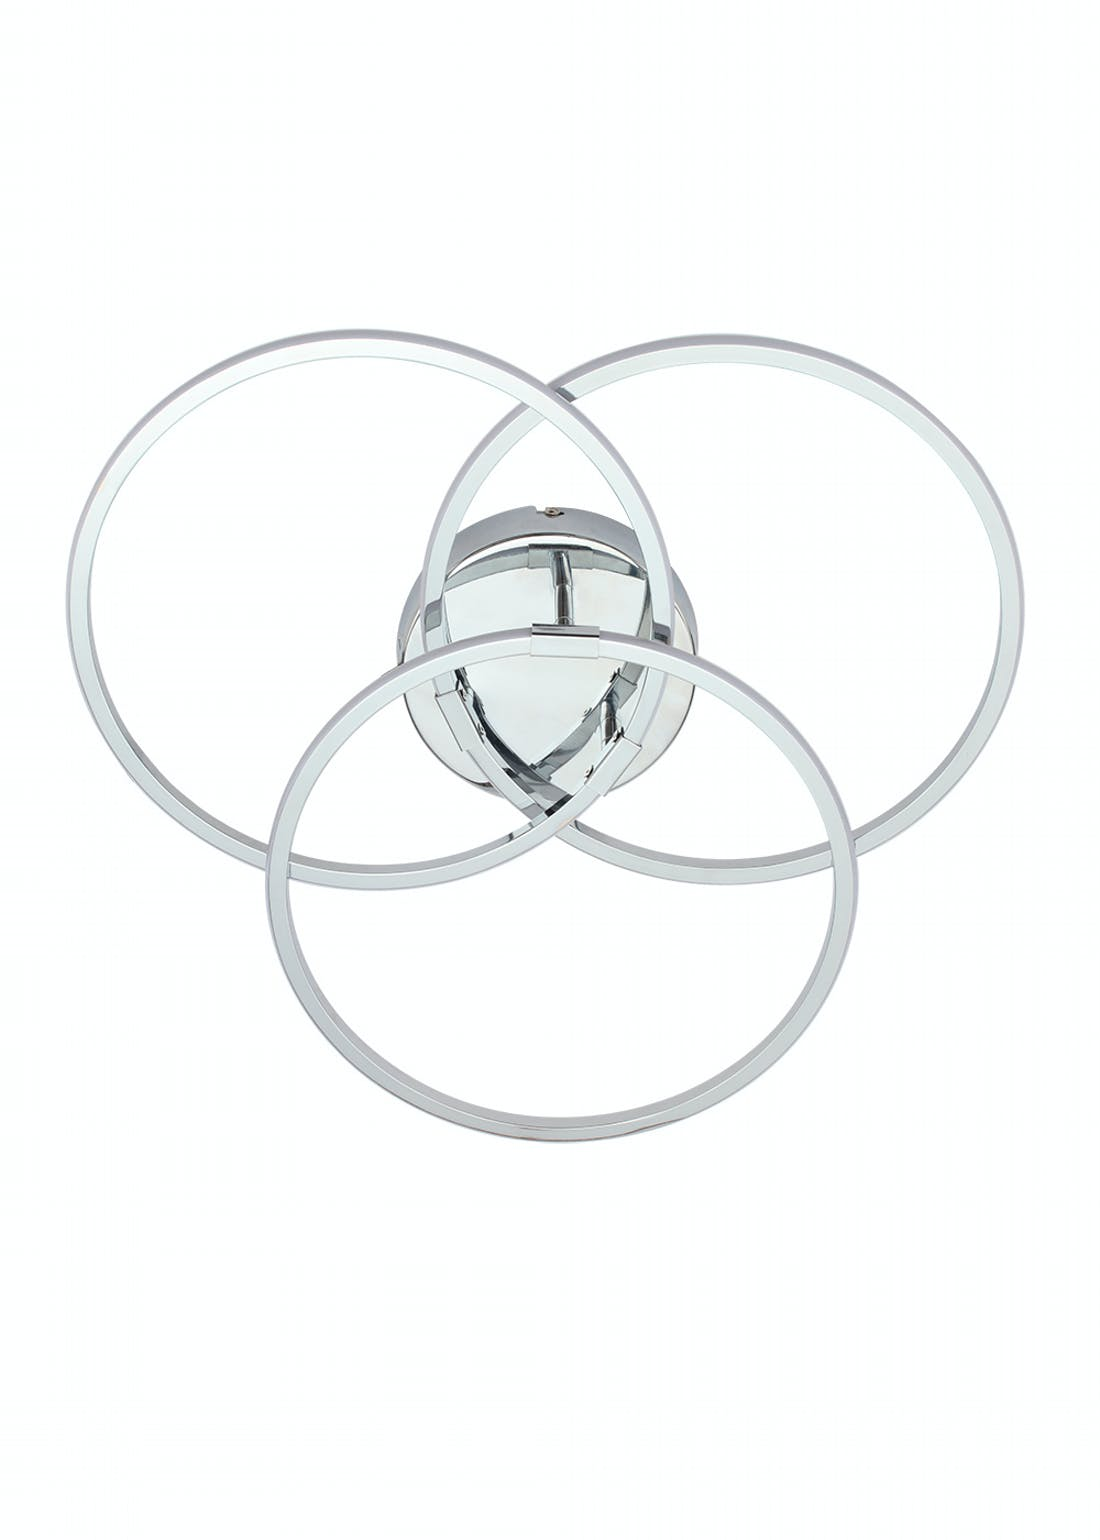 LED Hoop Flush Light (W45cm x H11cm)